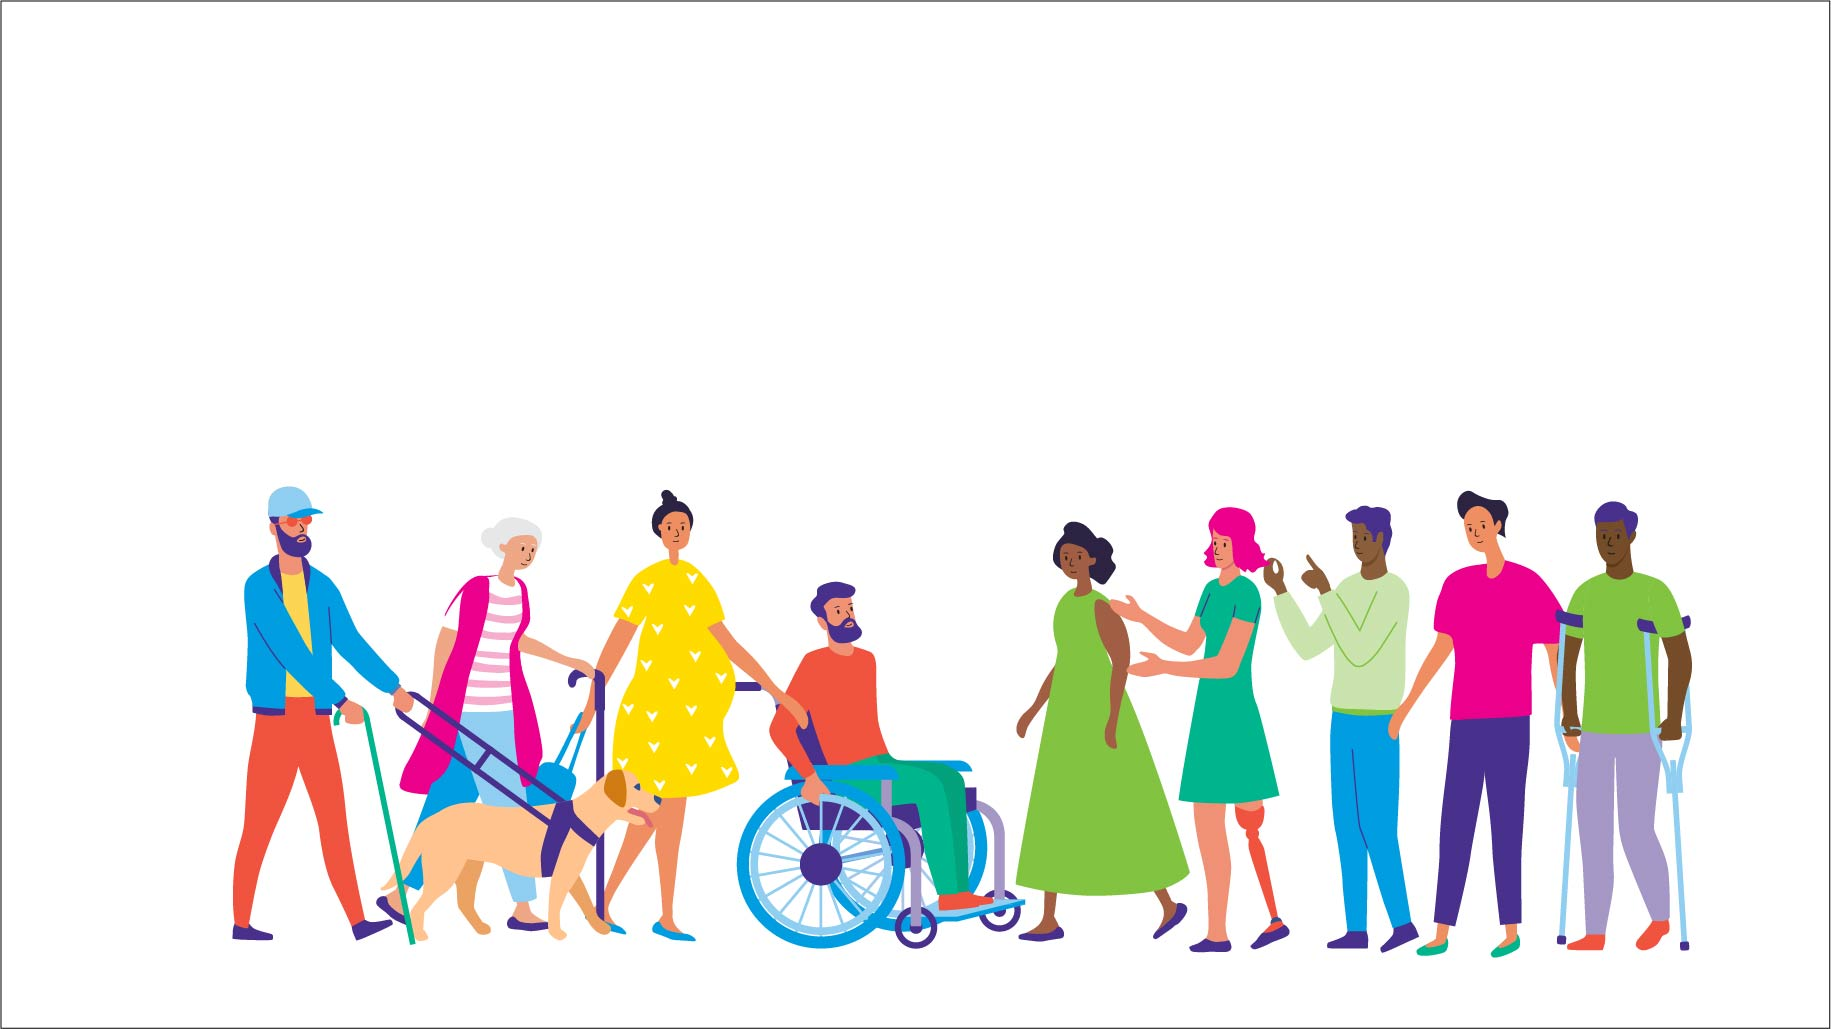 Illustration of group of people stood in a row. Very colourful.